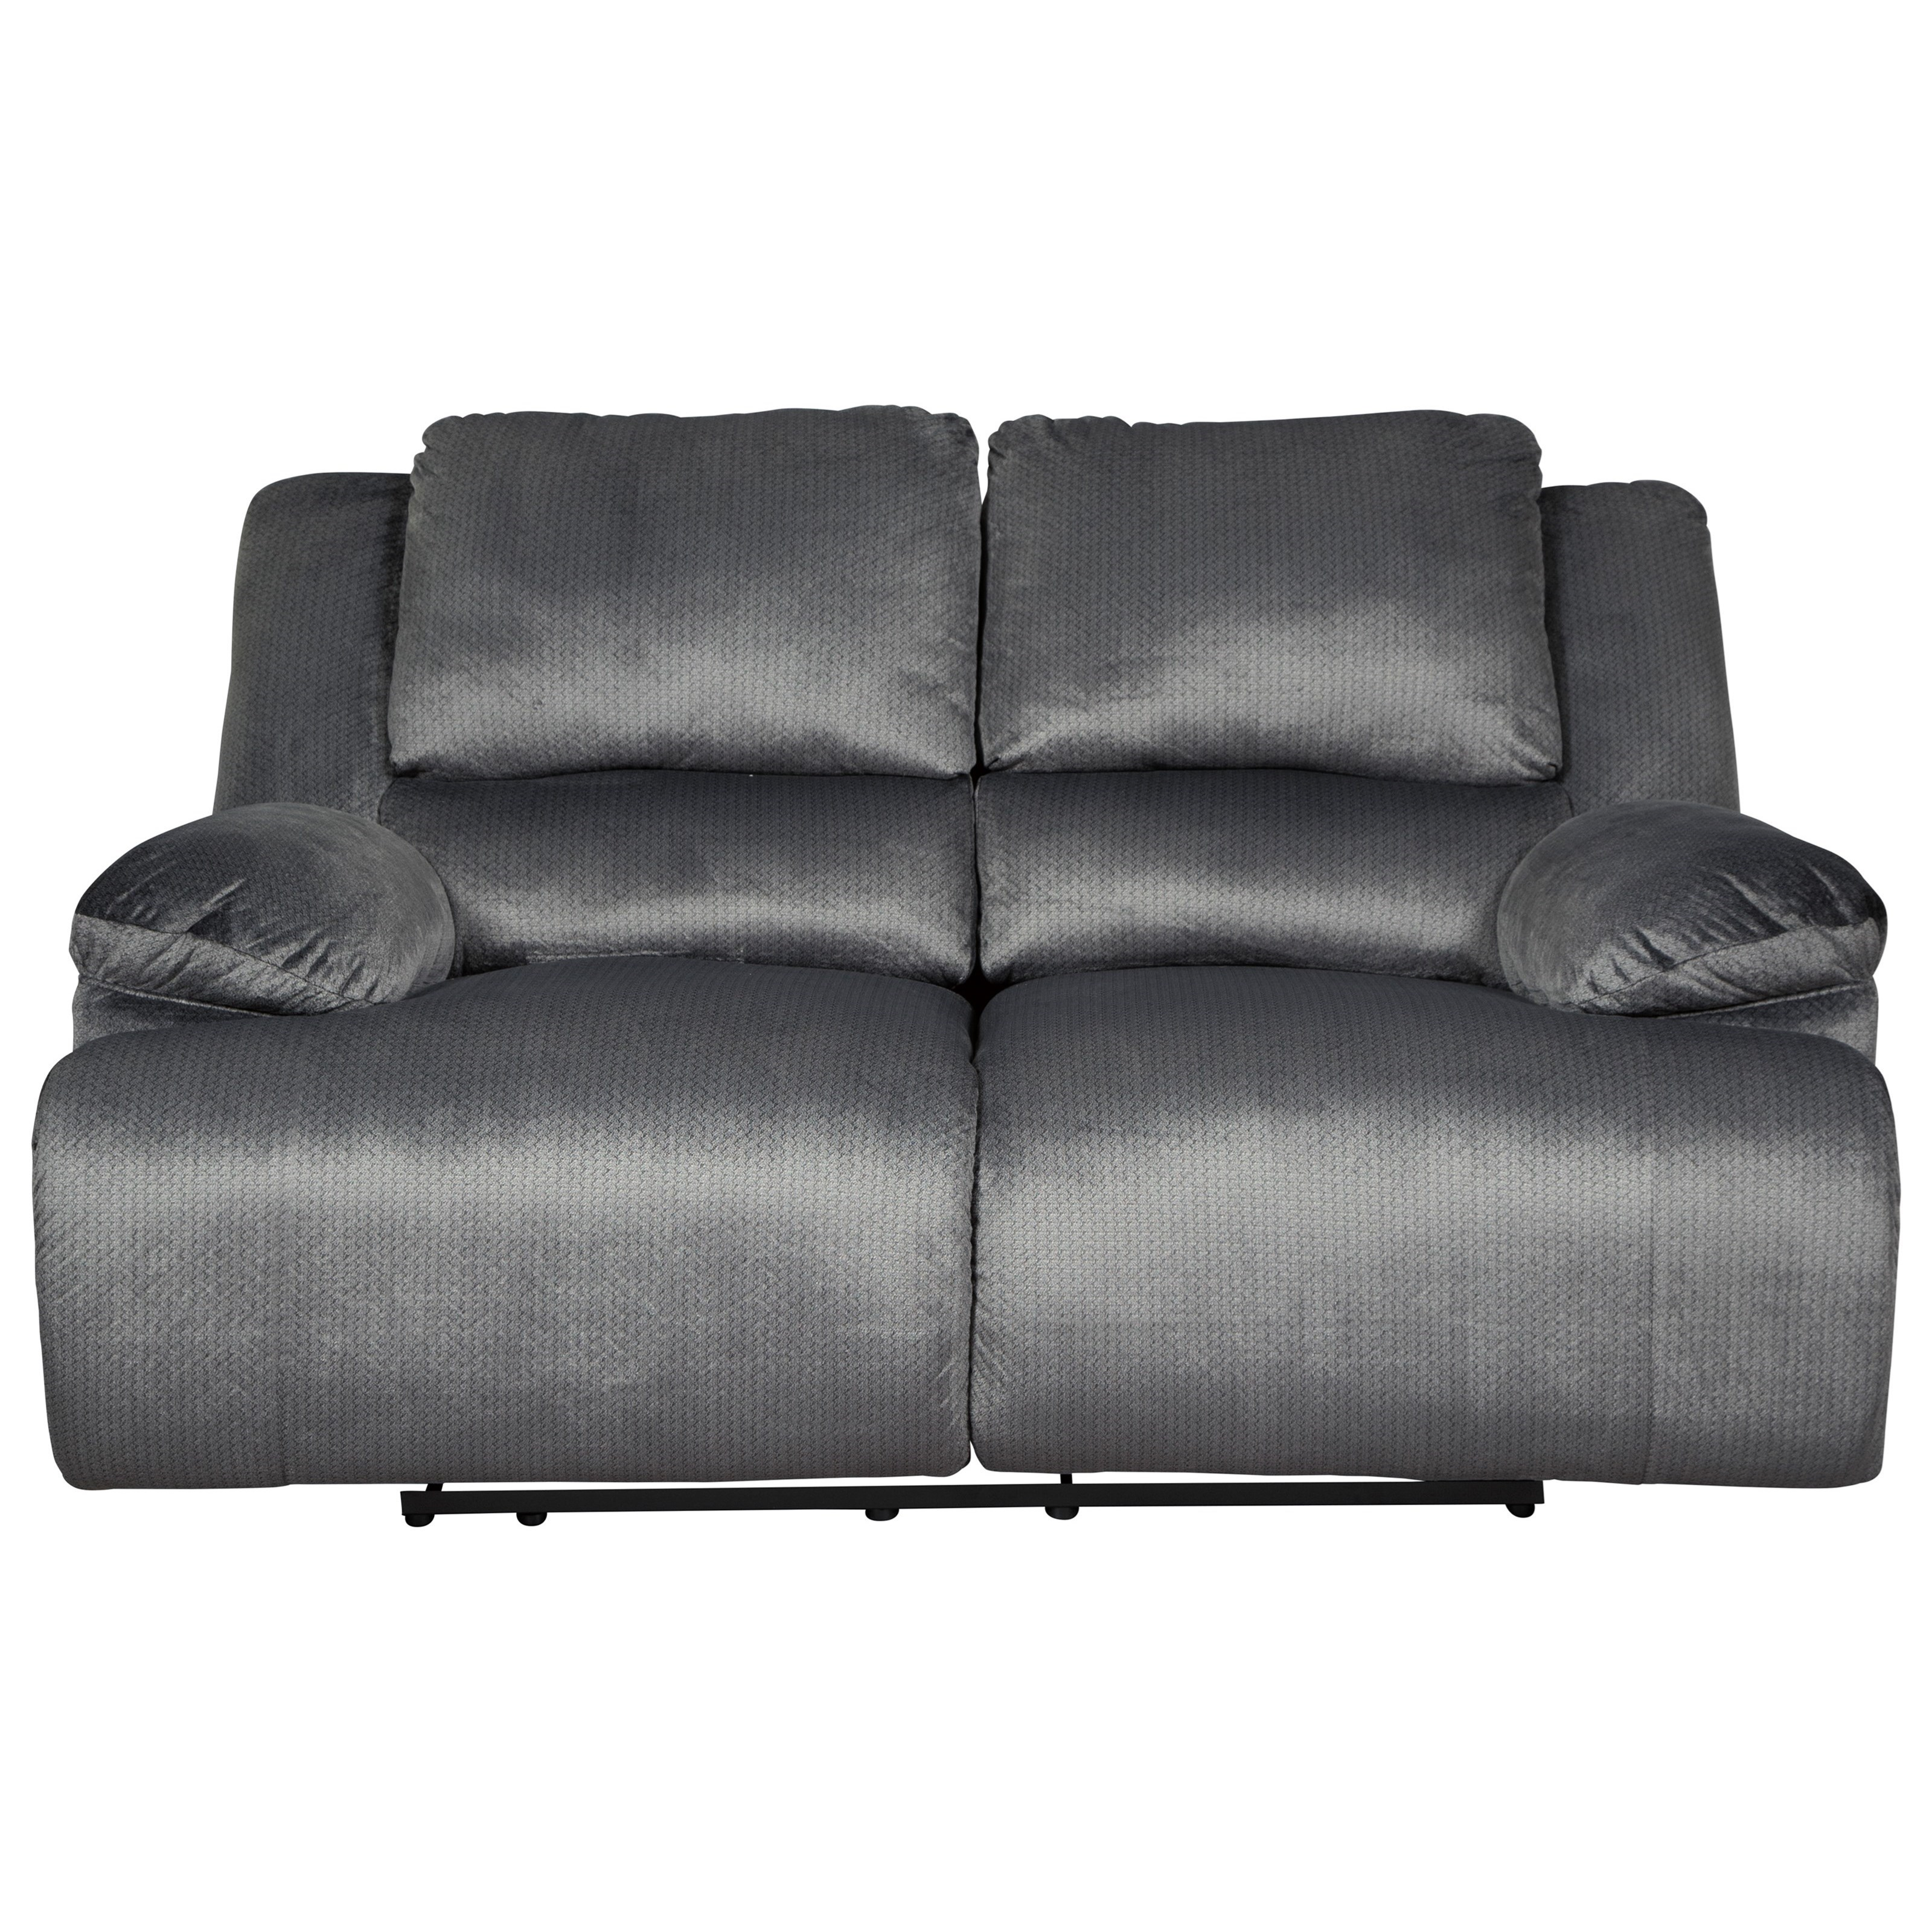 Clonmel Reclining Power Loveseat by Signature Design by Ashley at Standard Furniture